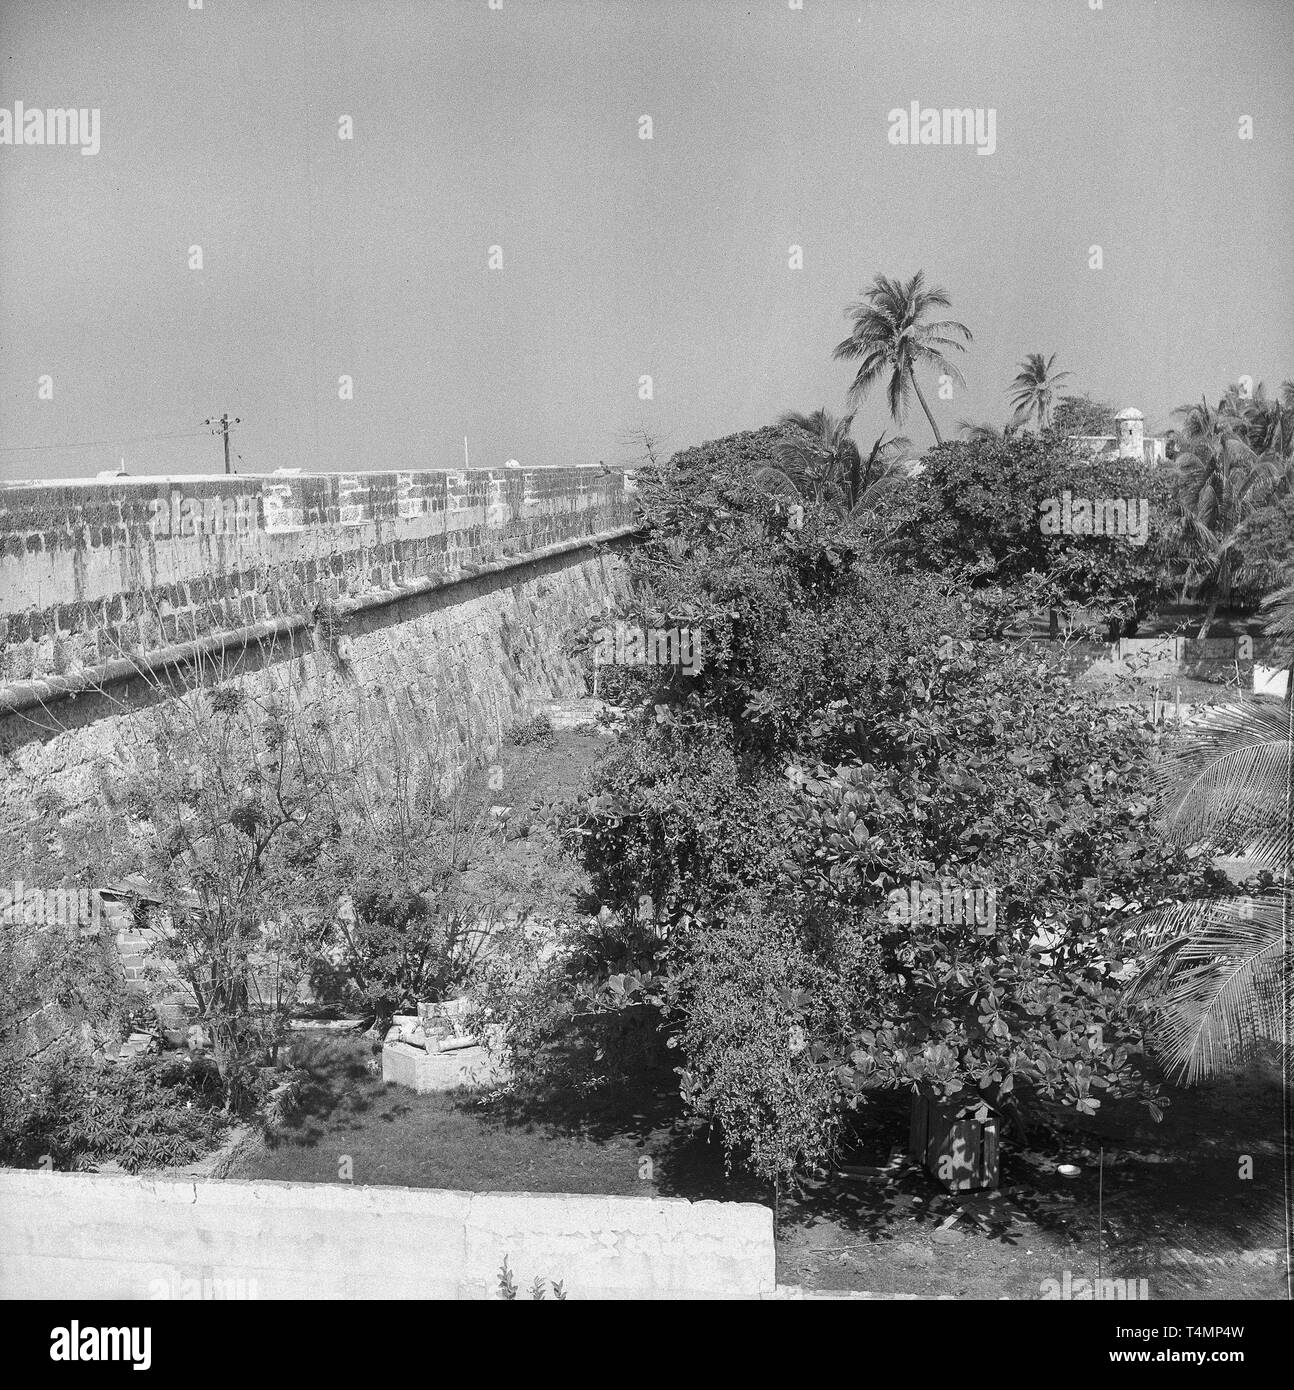 View from a bastion on the outskirts of the city, Cartagena (Bolívar), Colombia, 1958. | usage worldwide - Stock Image